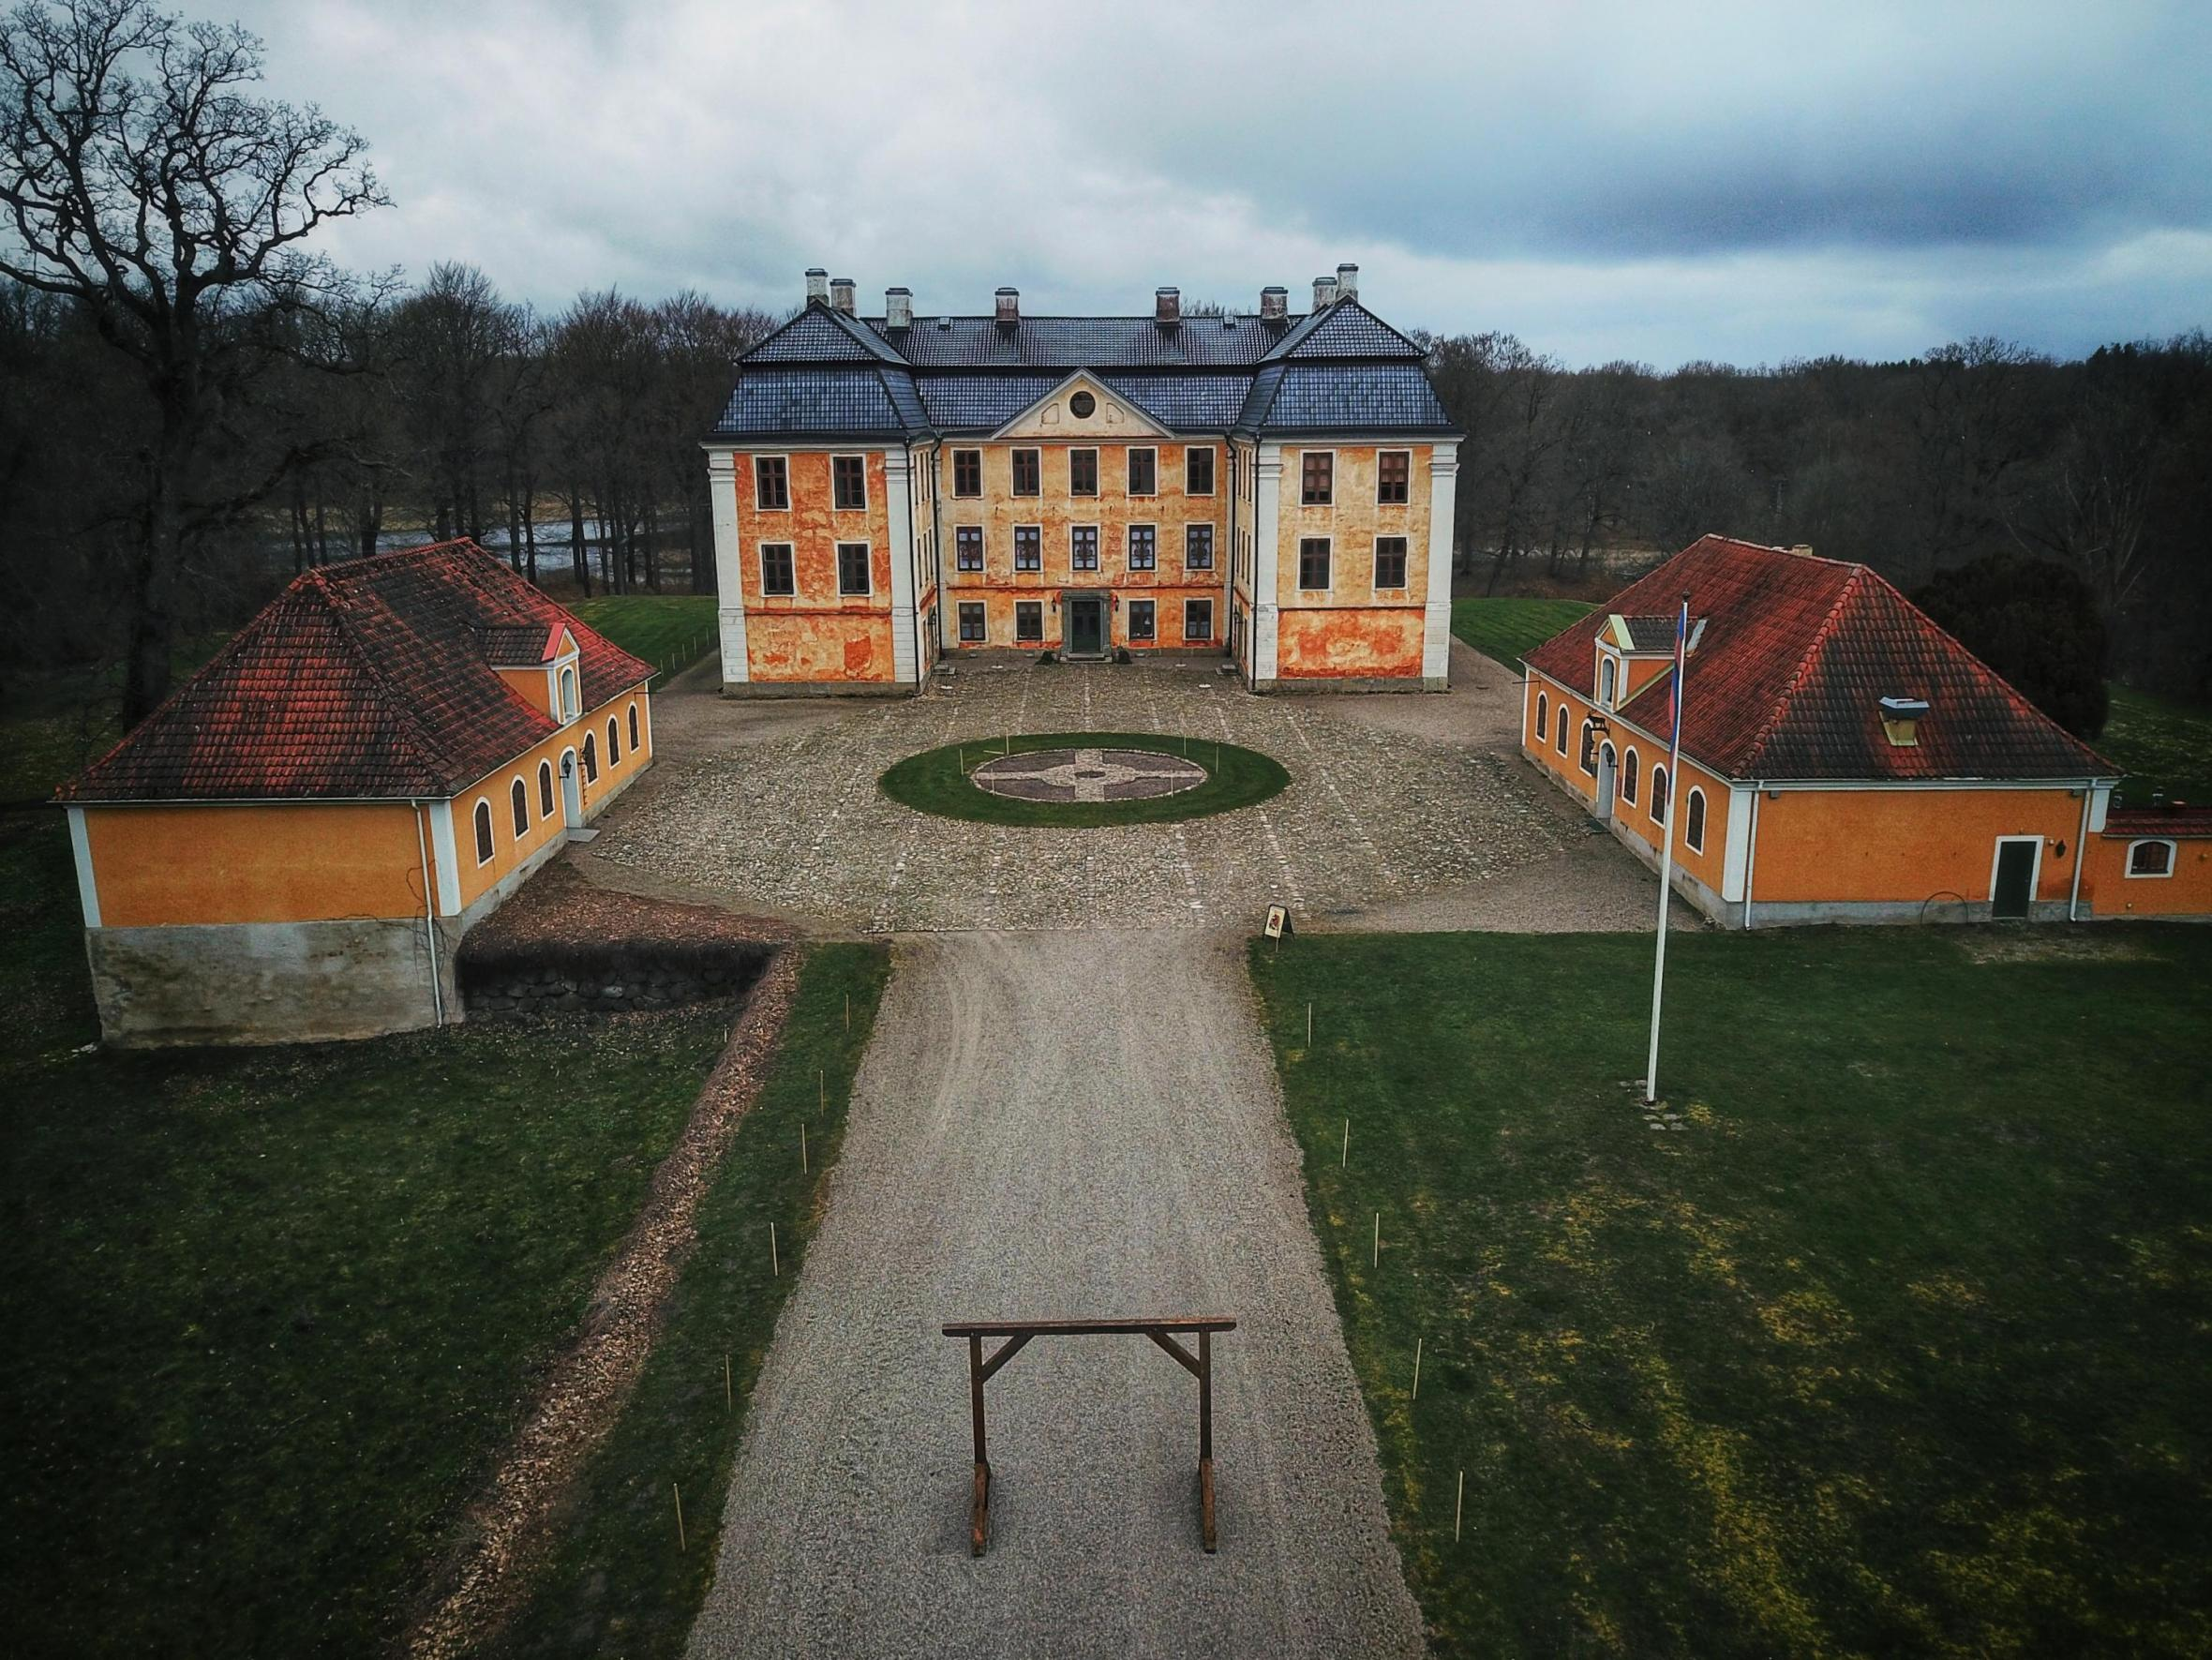 Christinehof castle with a view from above